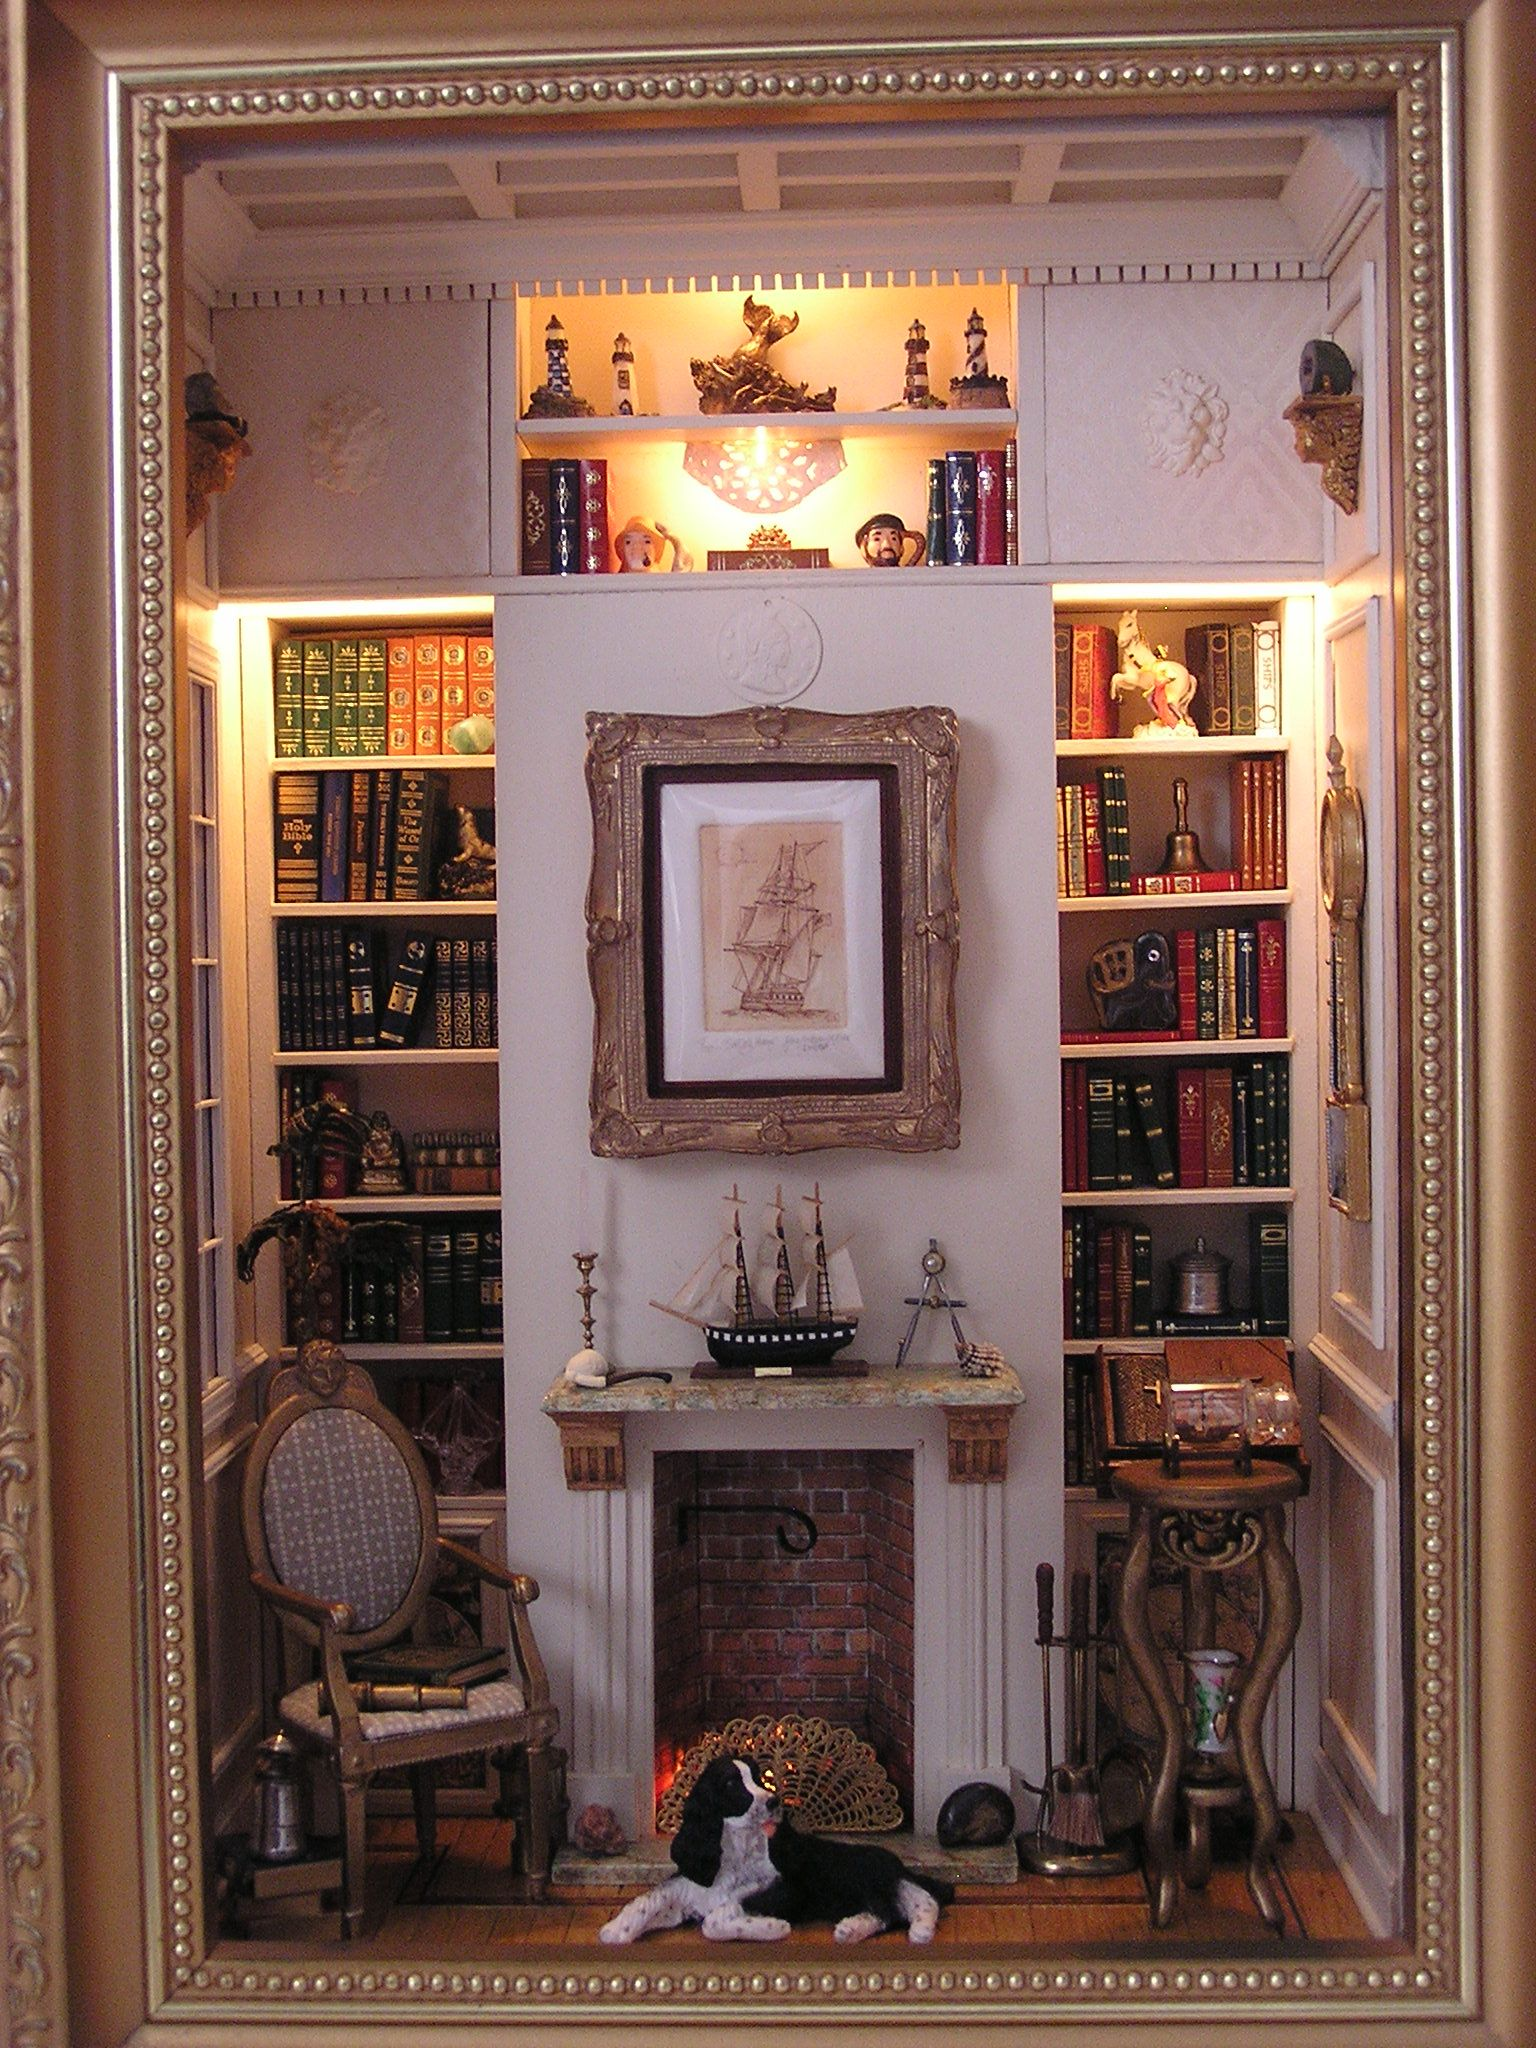 The Captain's Library, club project Miniatures West ~ Notice the coffered ceiling and inlaid floor. This project was designed and taught to our club by miniatures artisan Marilyn Taylor.